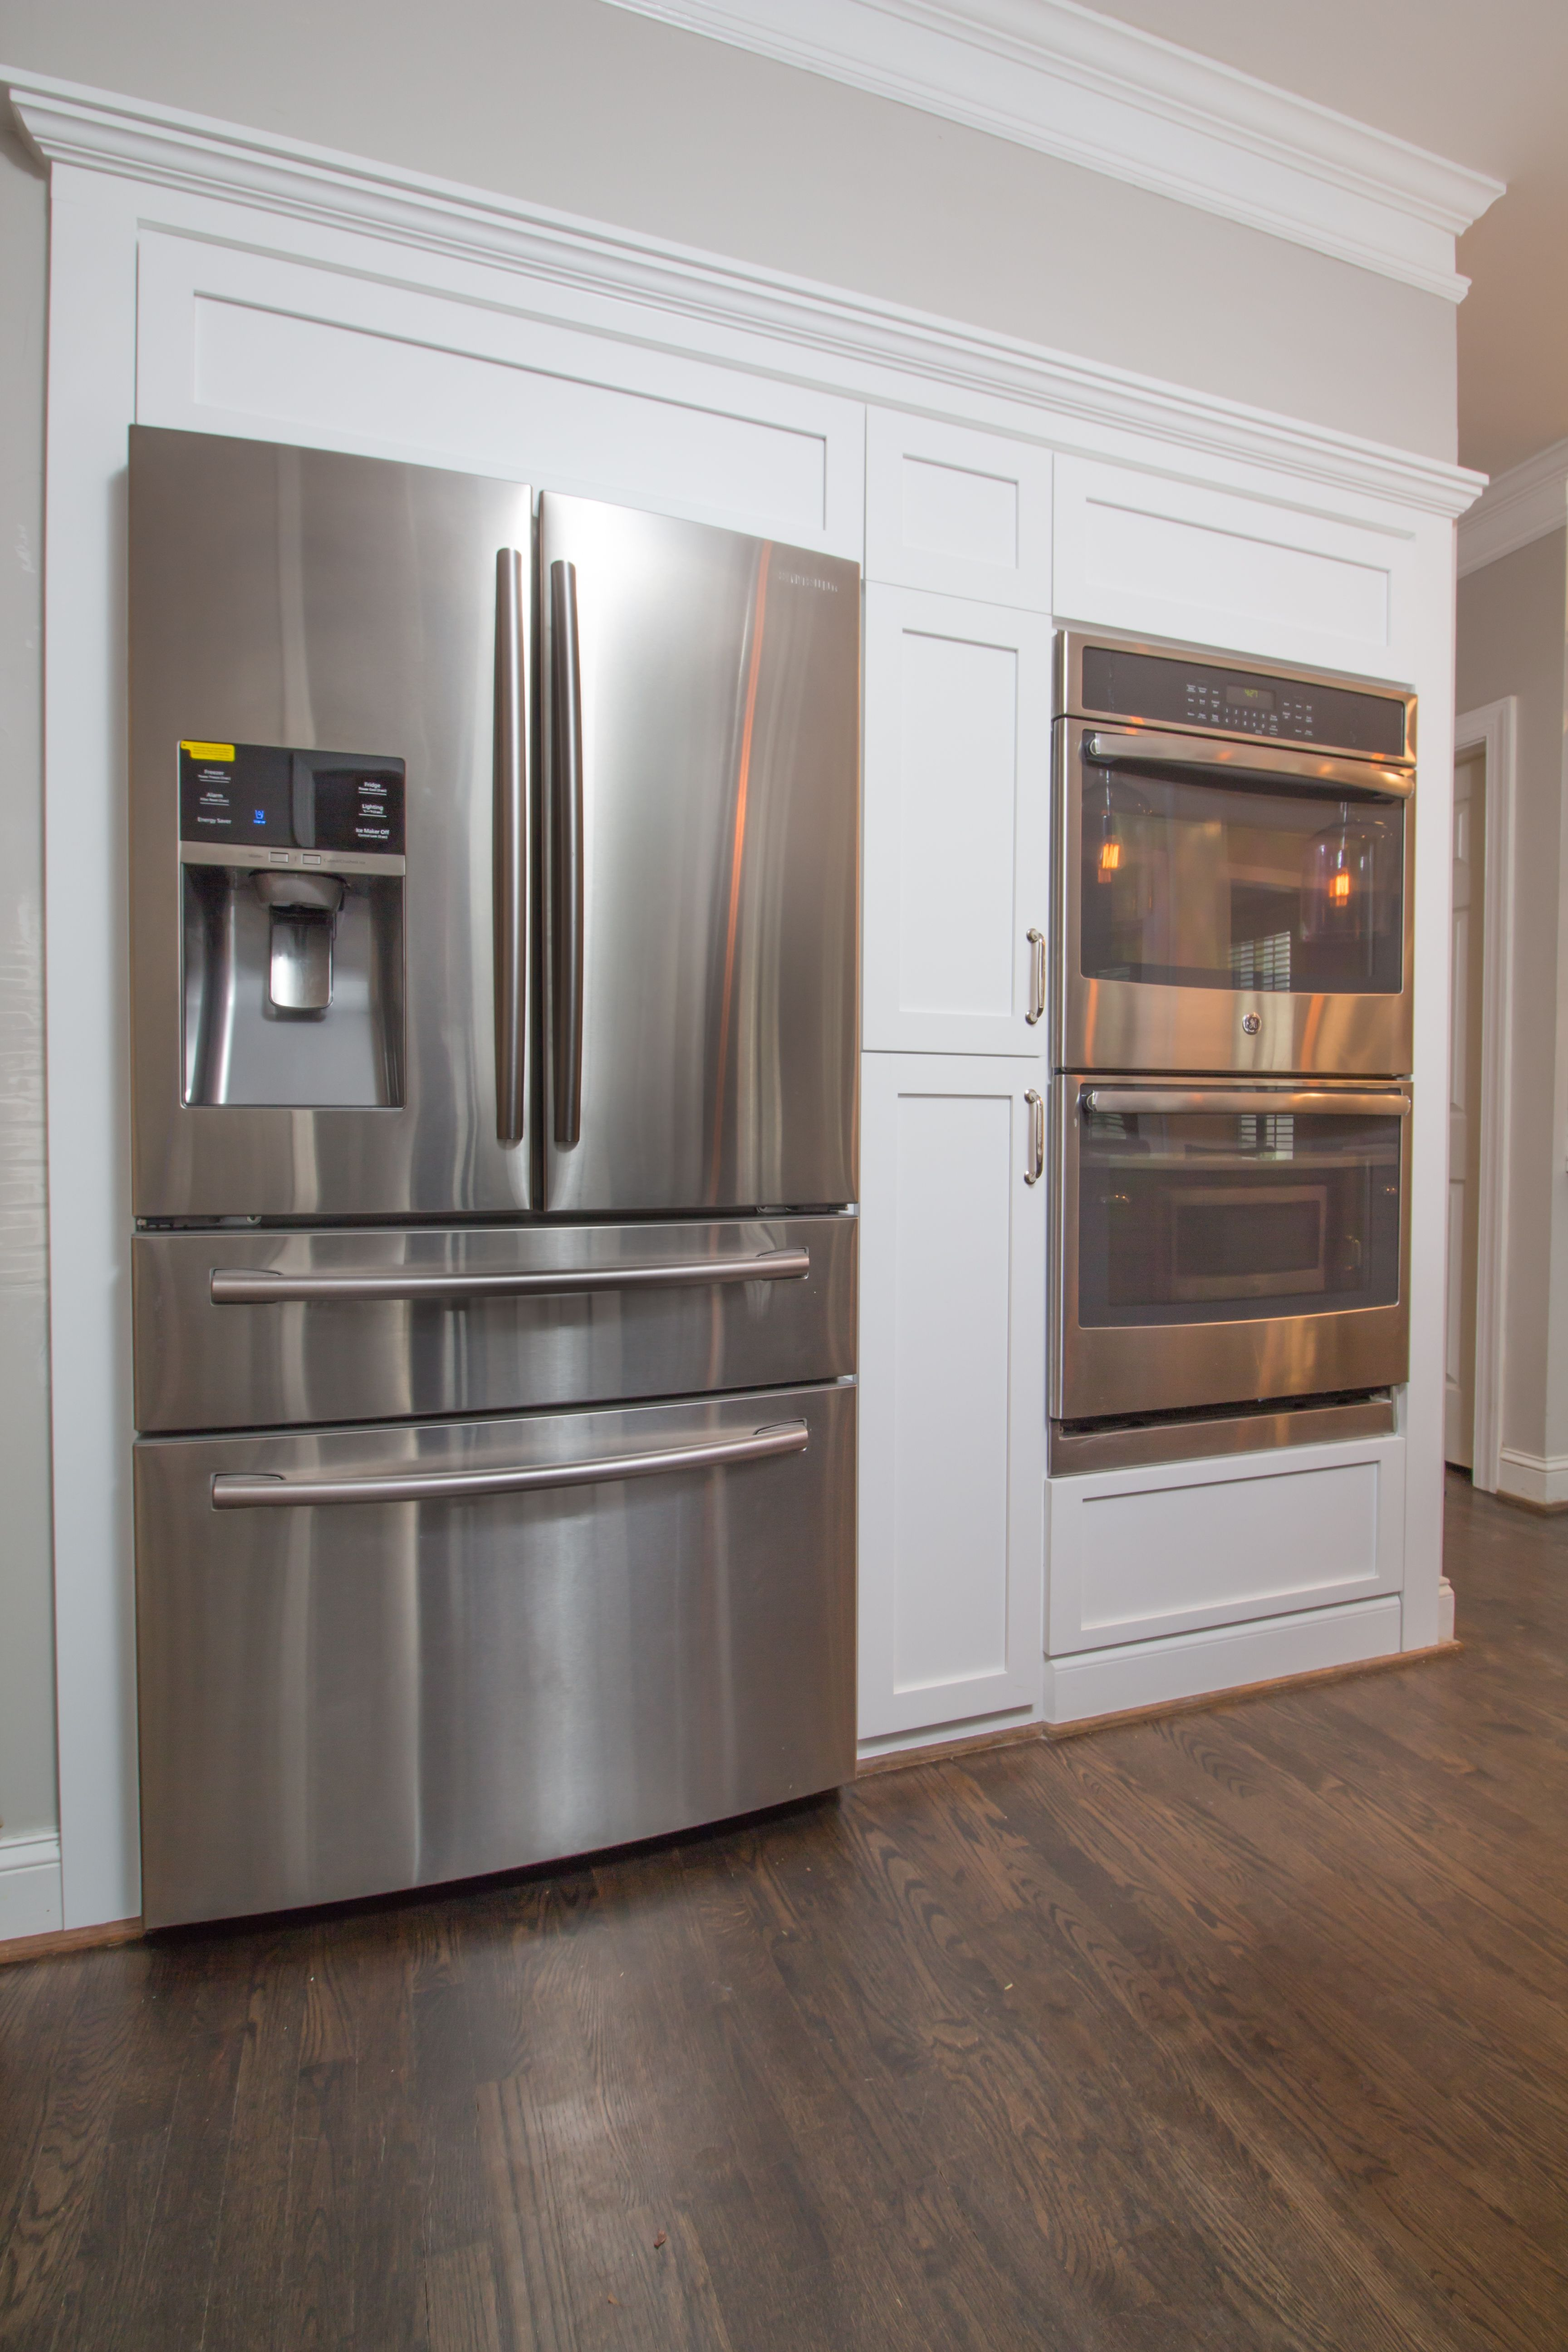 New Fridge And Double Oven Wall With Shaker Style Panels